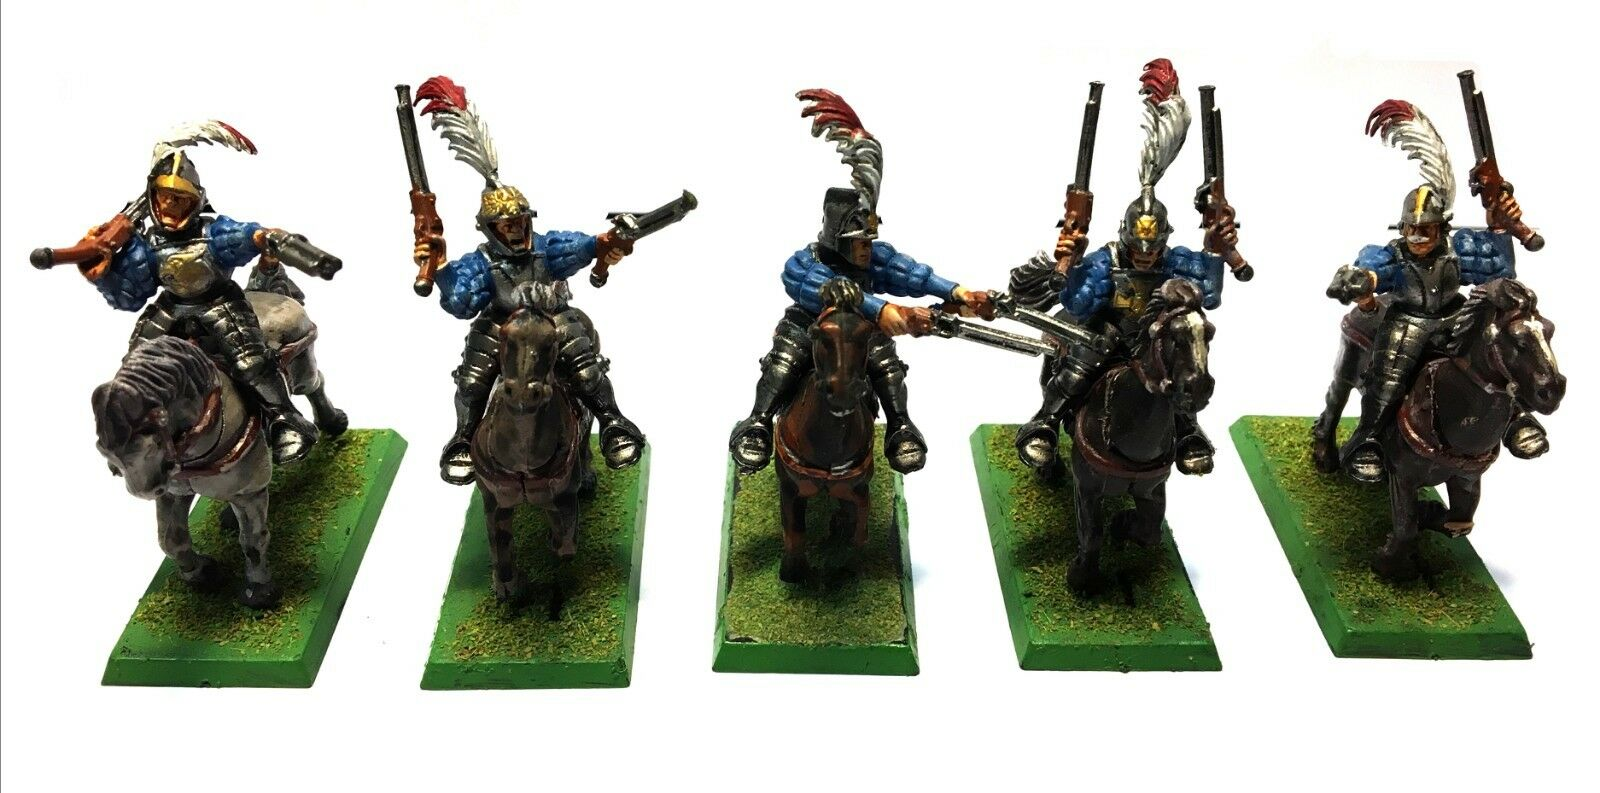 Warhammer Fantasy - Empire Pistoliers Outriders - (Painted) - 28mm